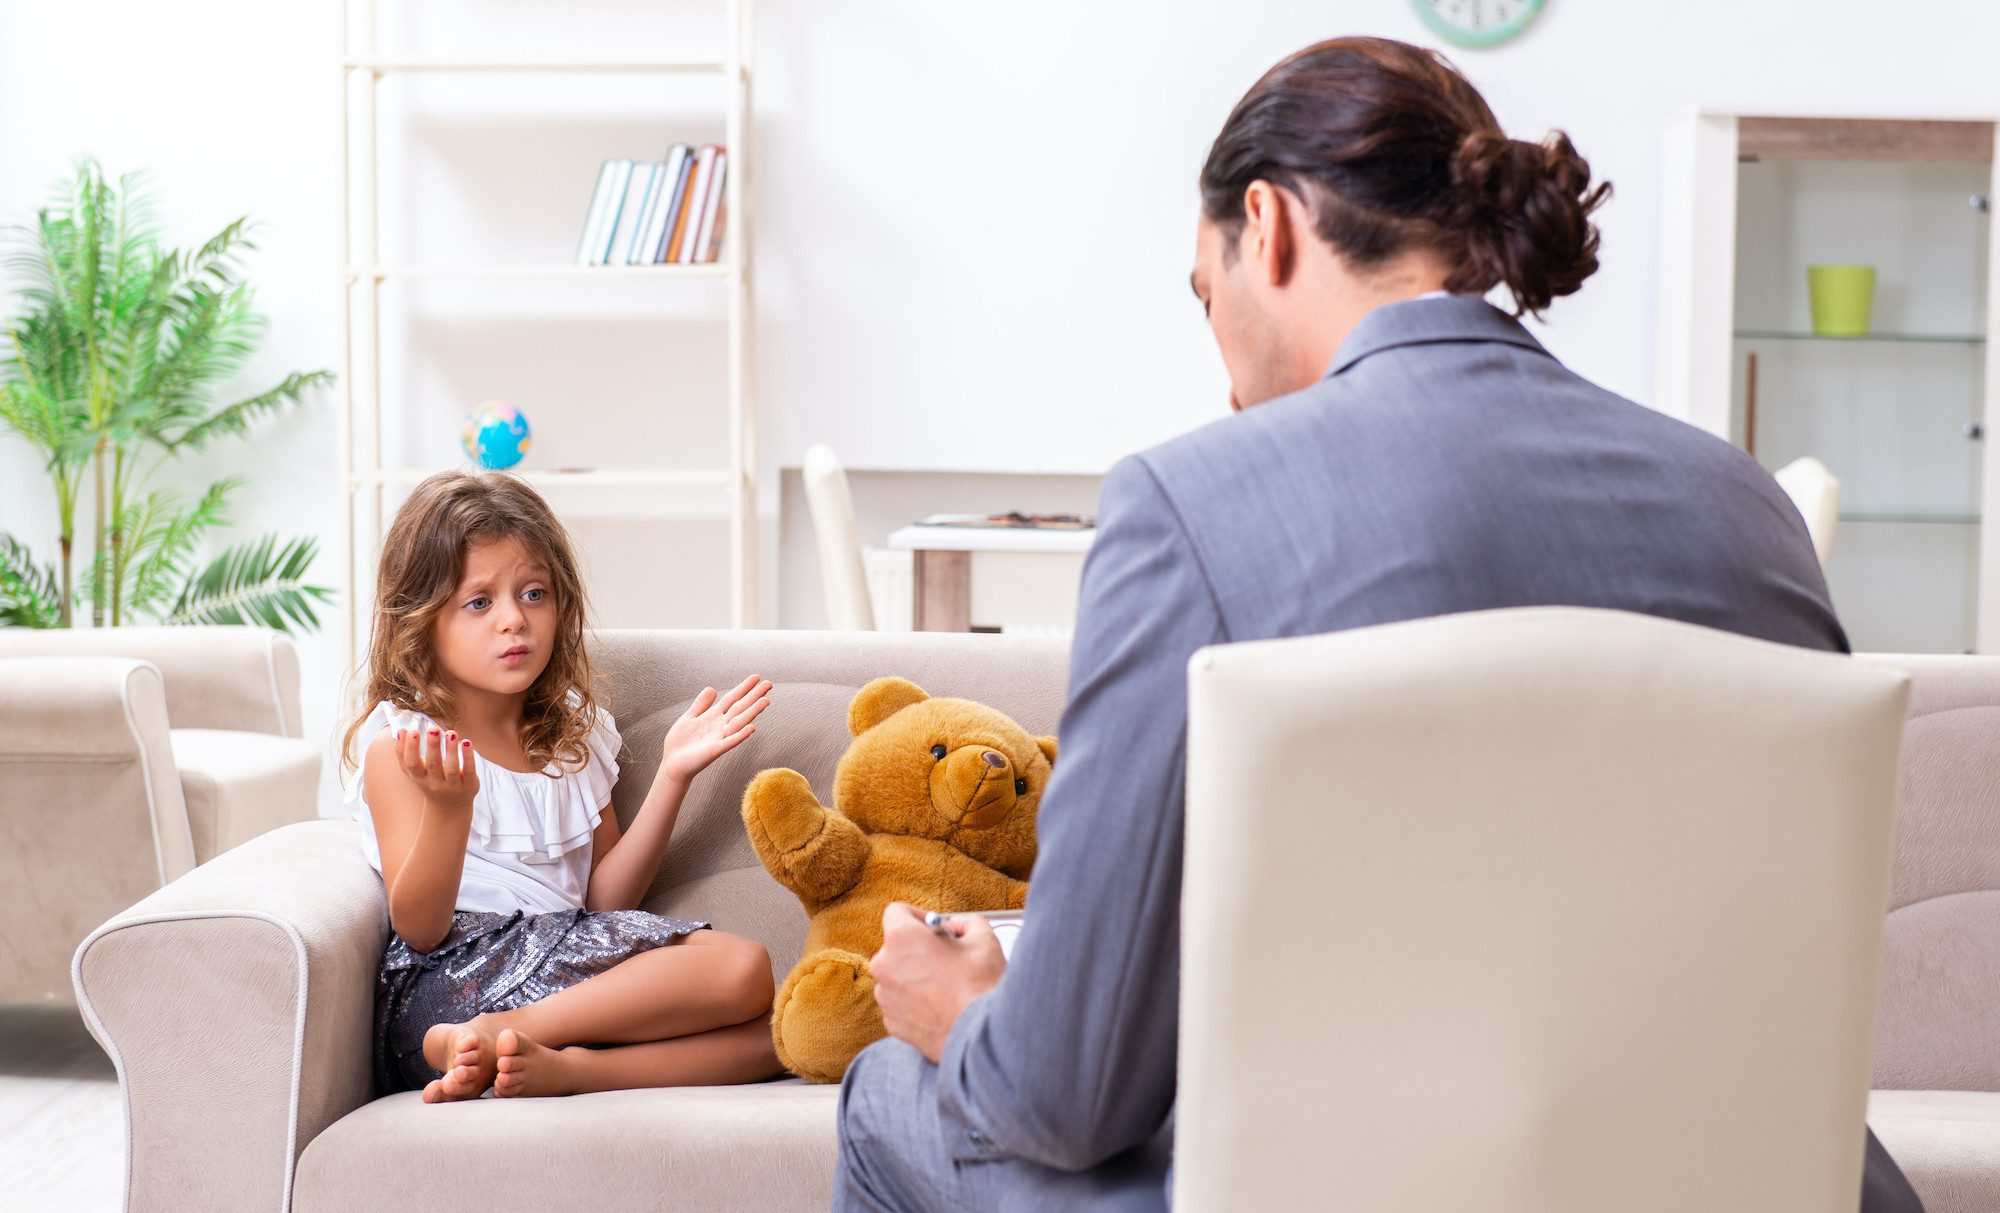 Therapist talking to girl on a couch